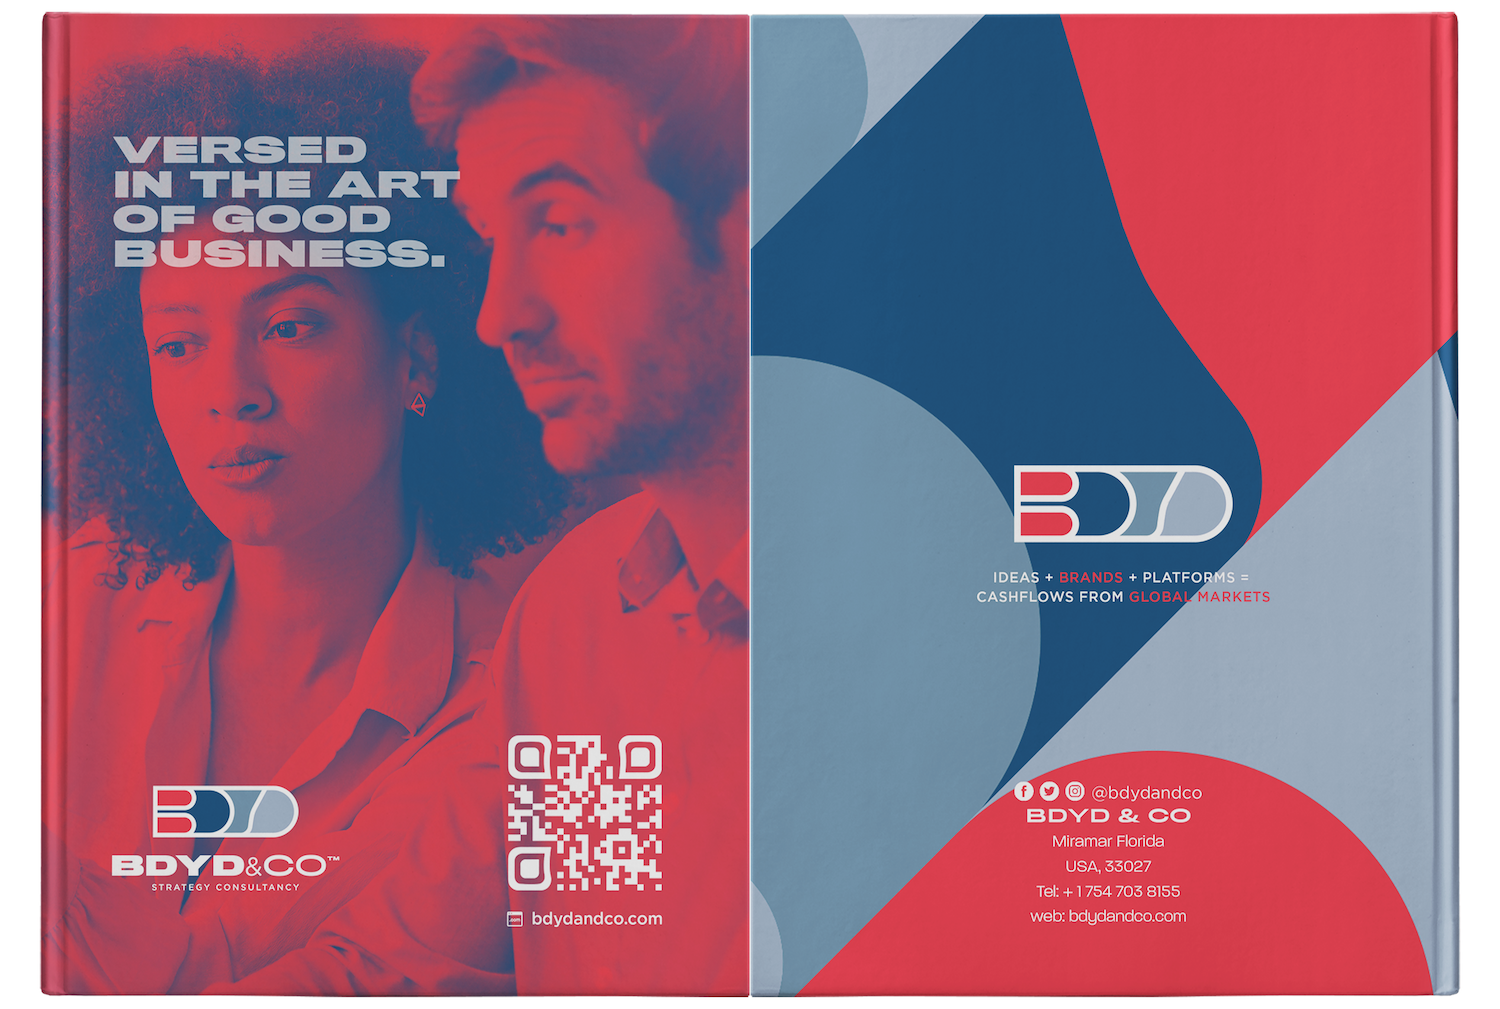 BDYD and Co. Brand Strategy Consultancy